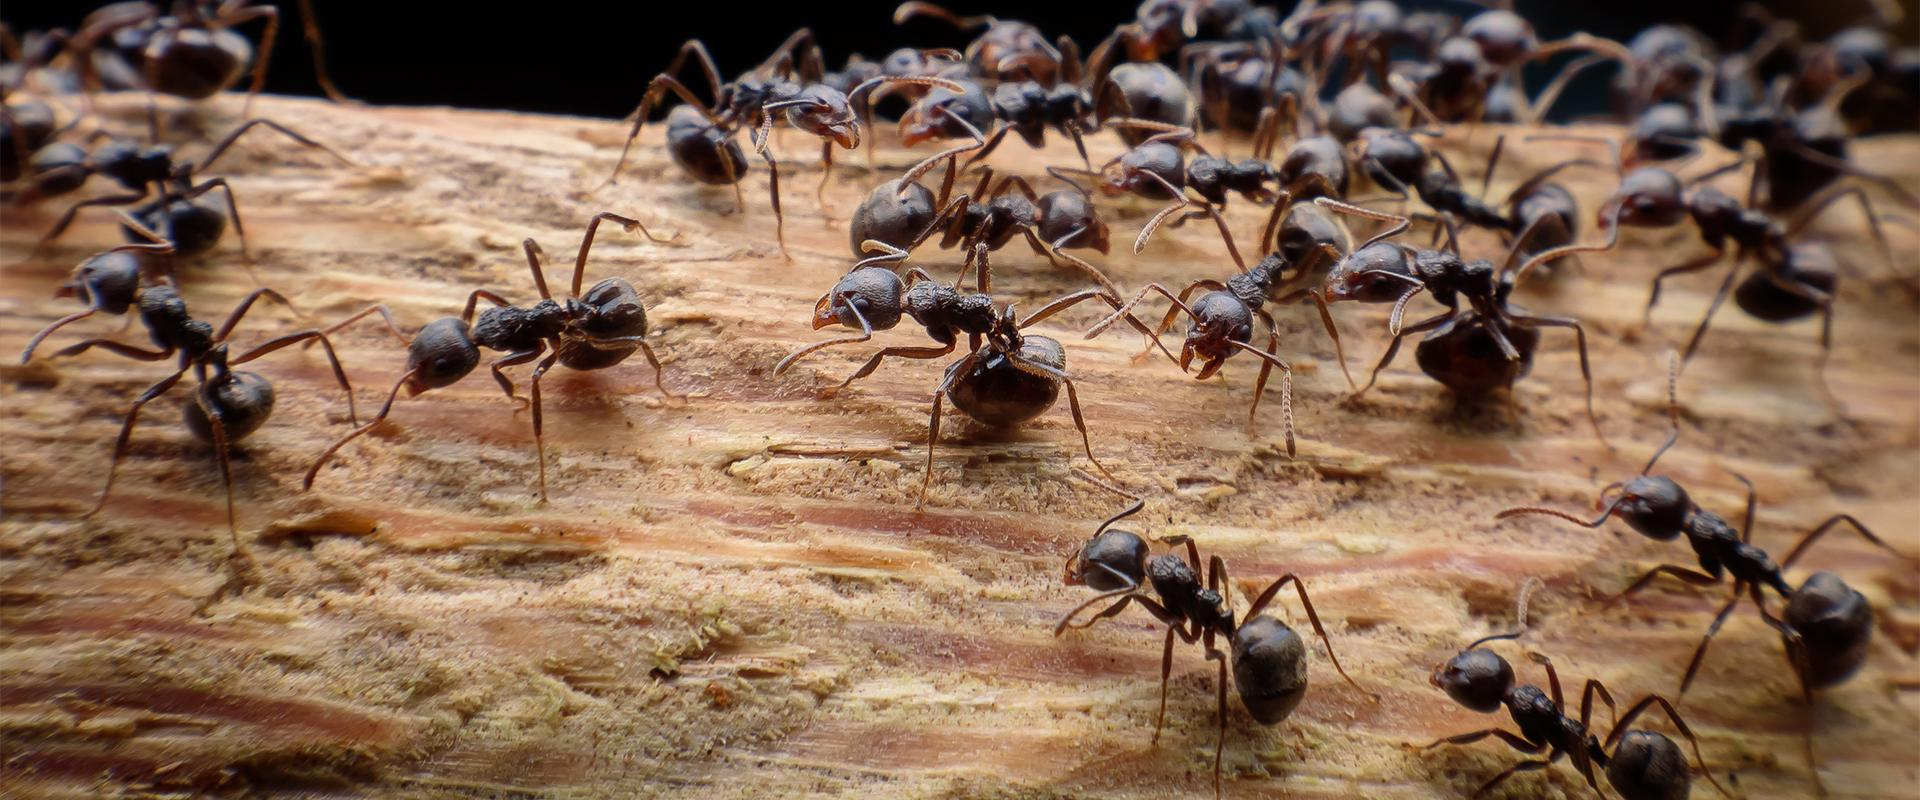 close up of ants on a log